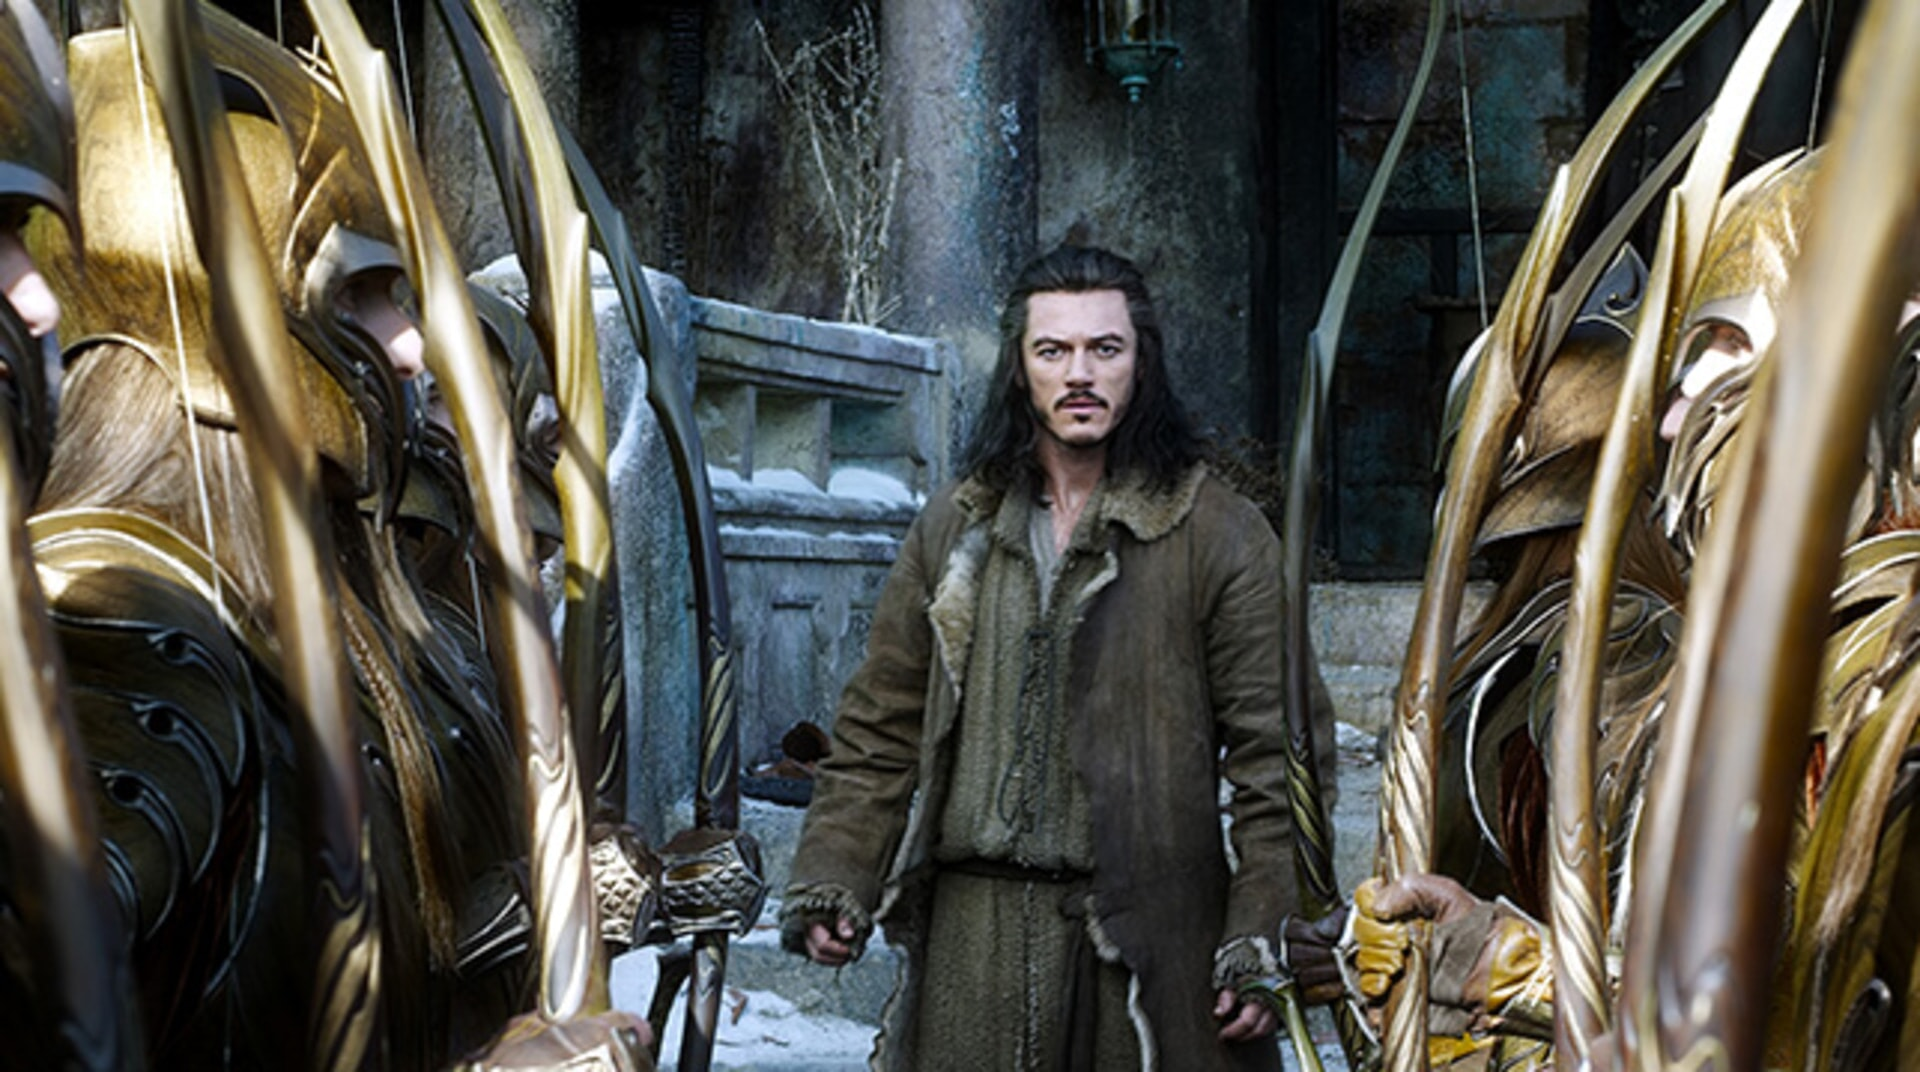 The Hobbit: The Battle of the Five Armies - Image 52